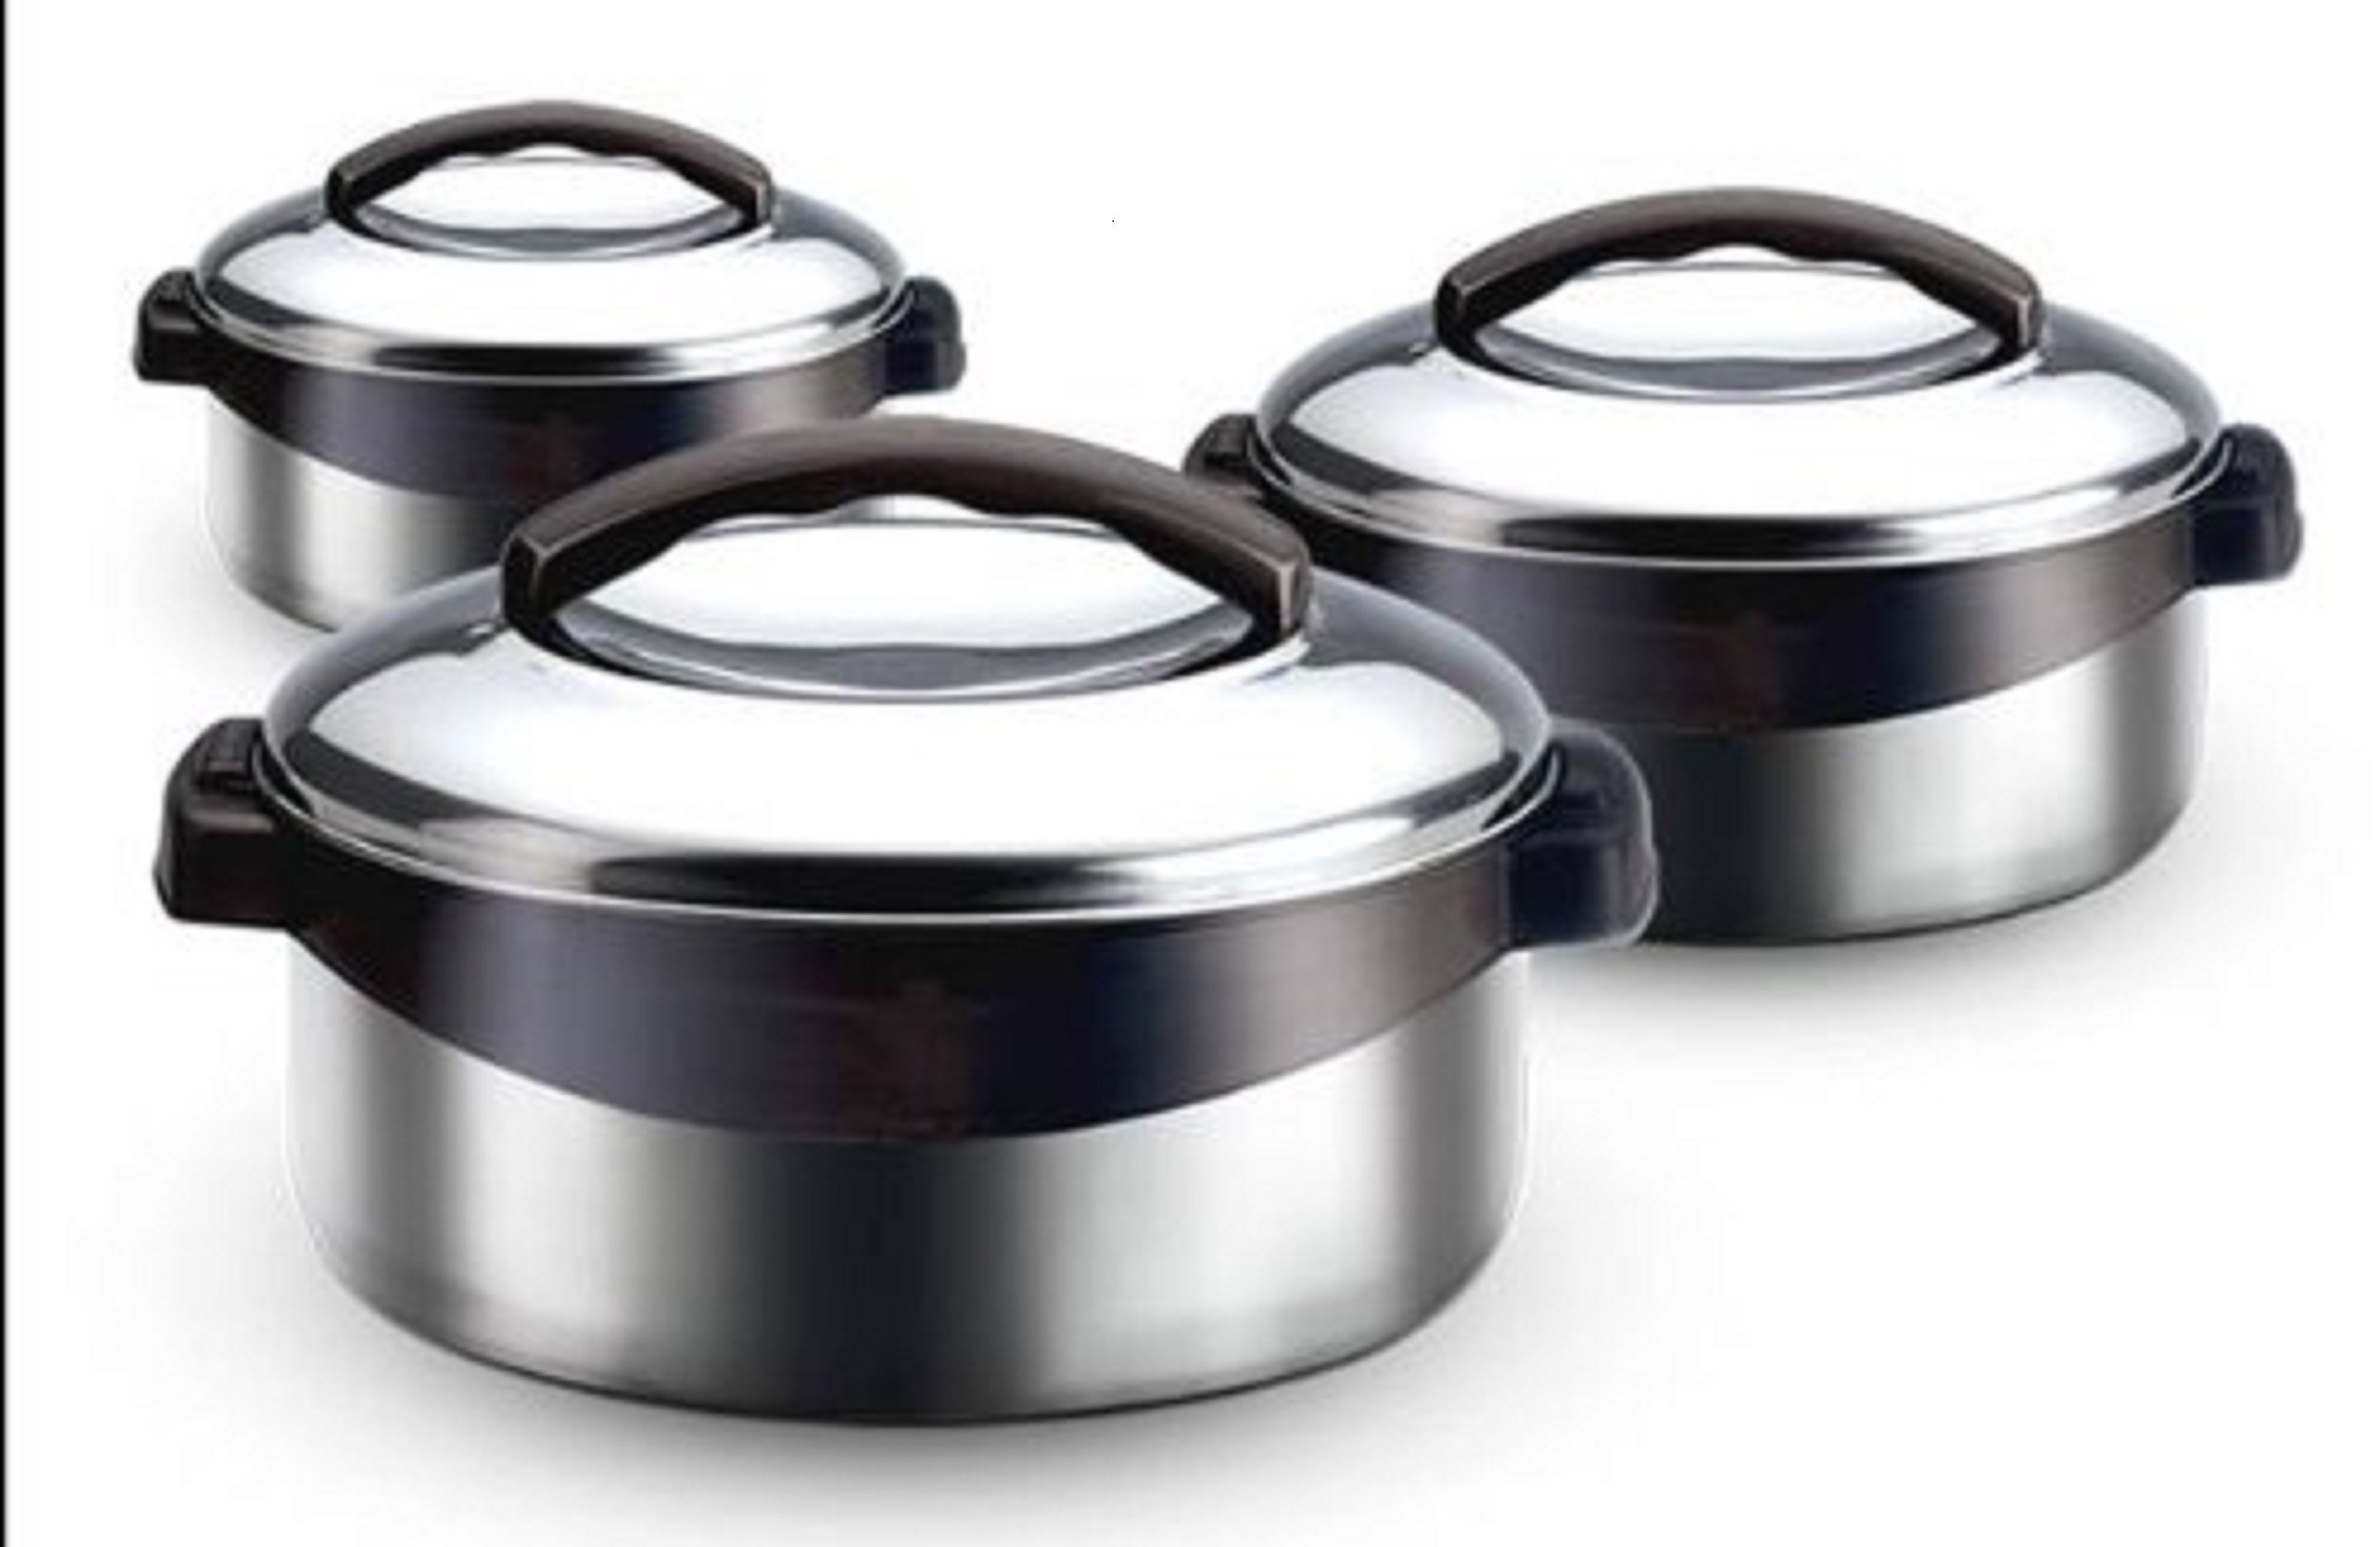 Milton Regent Hot Pot 3 piece Insulated Casserole Gift Set Keep Warm/Cold Upto 4-6 Hours, Stainless Steel by Milton